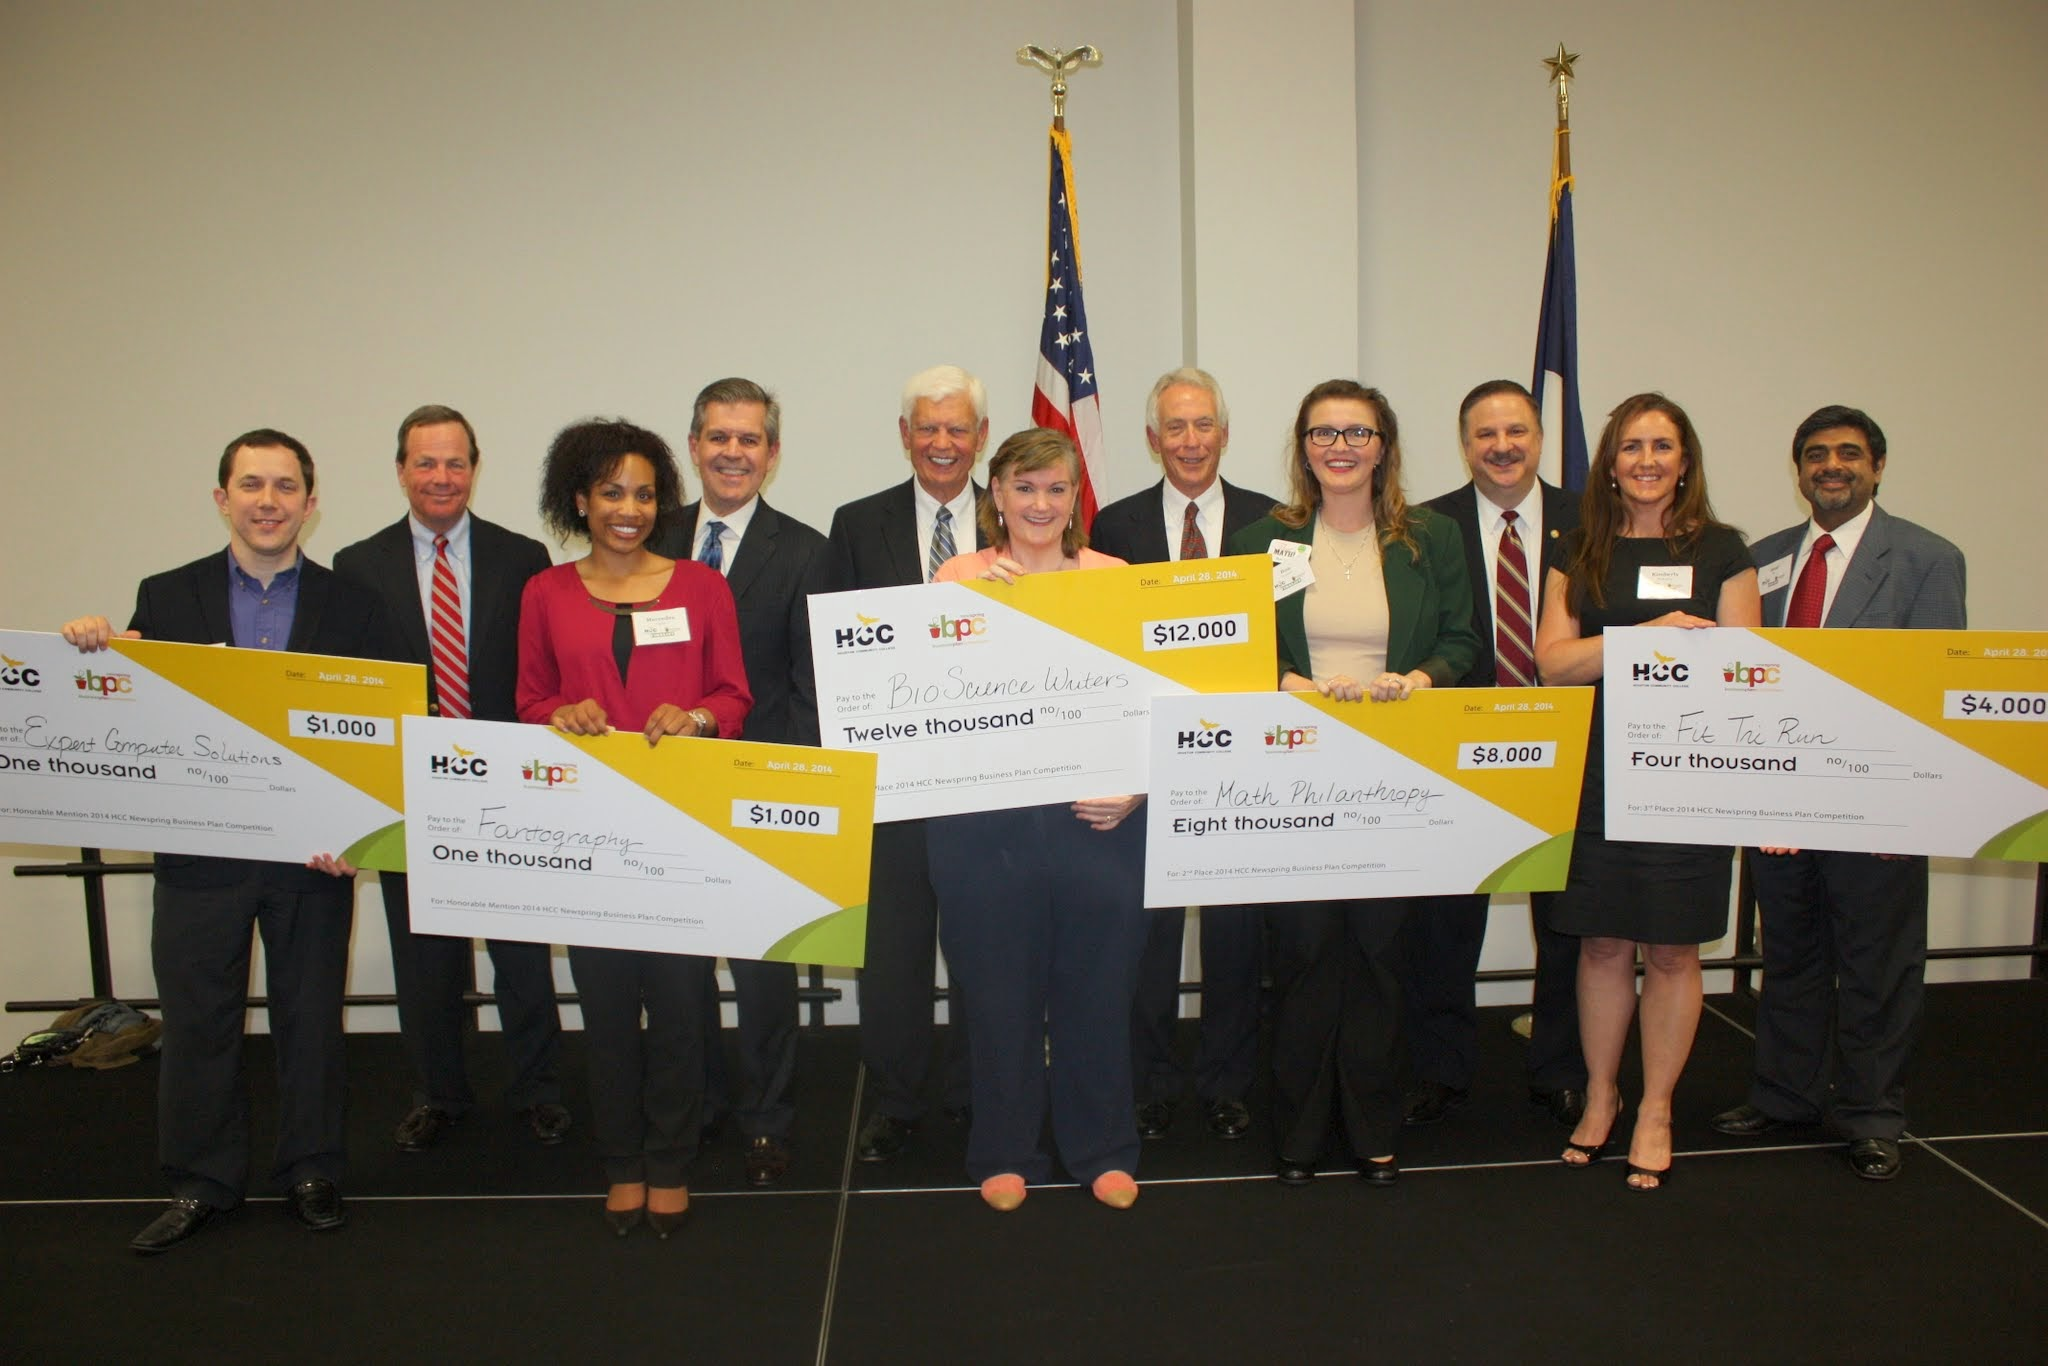 Northwest pa college business plan competition